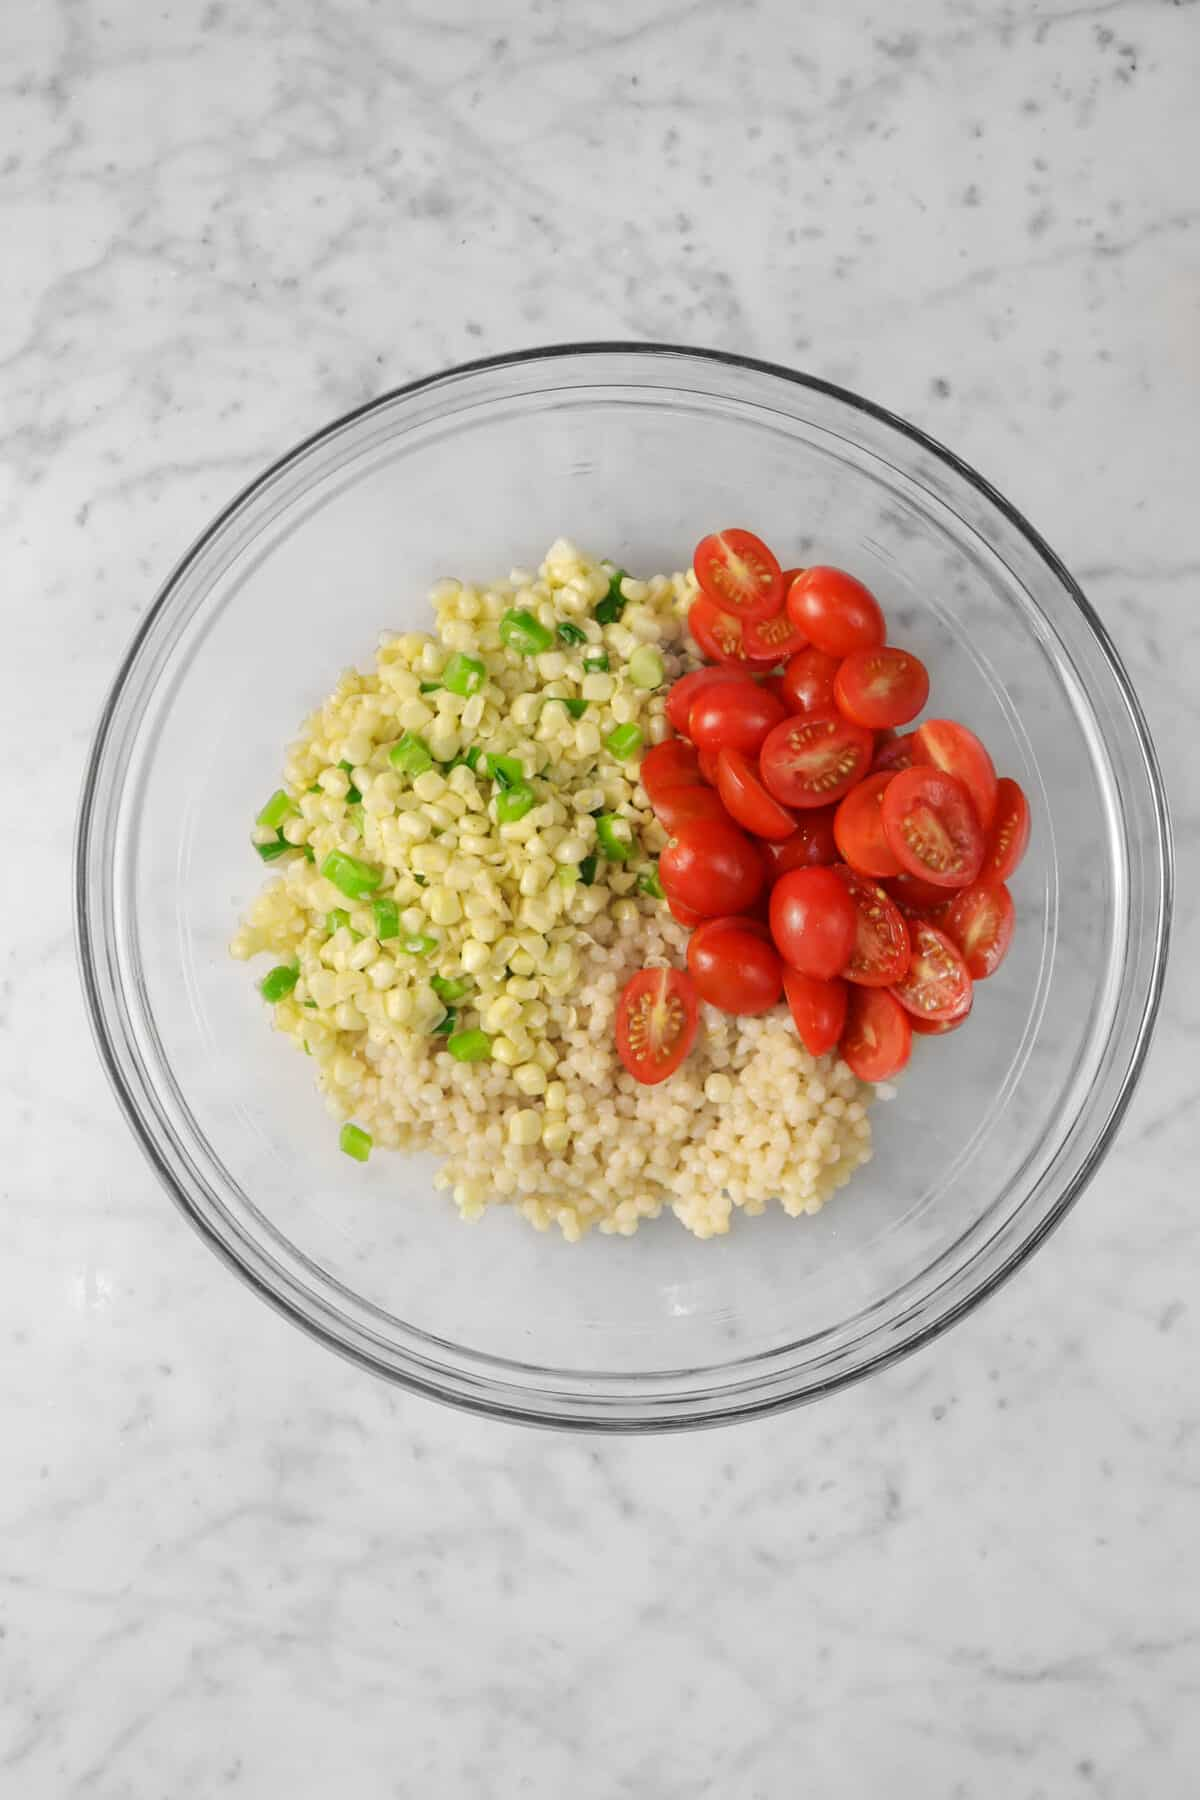 couscous, corn, green onions, and sliced tomatoes in a glass bowl